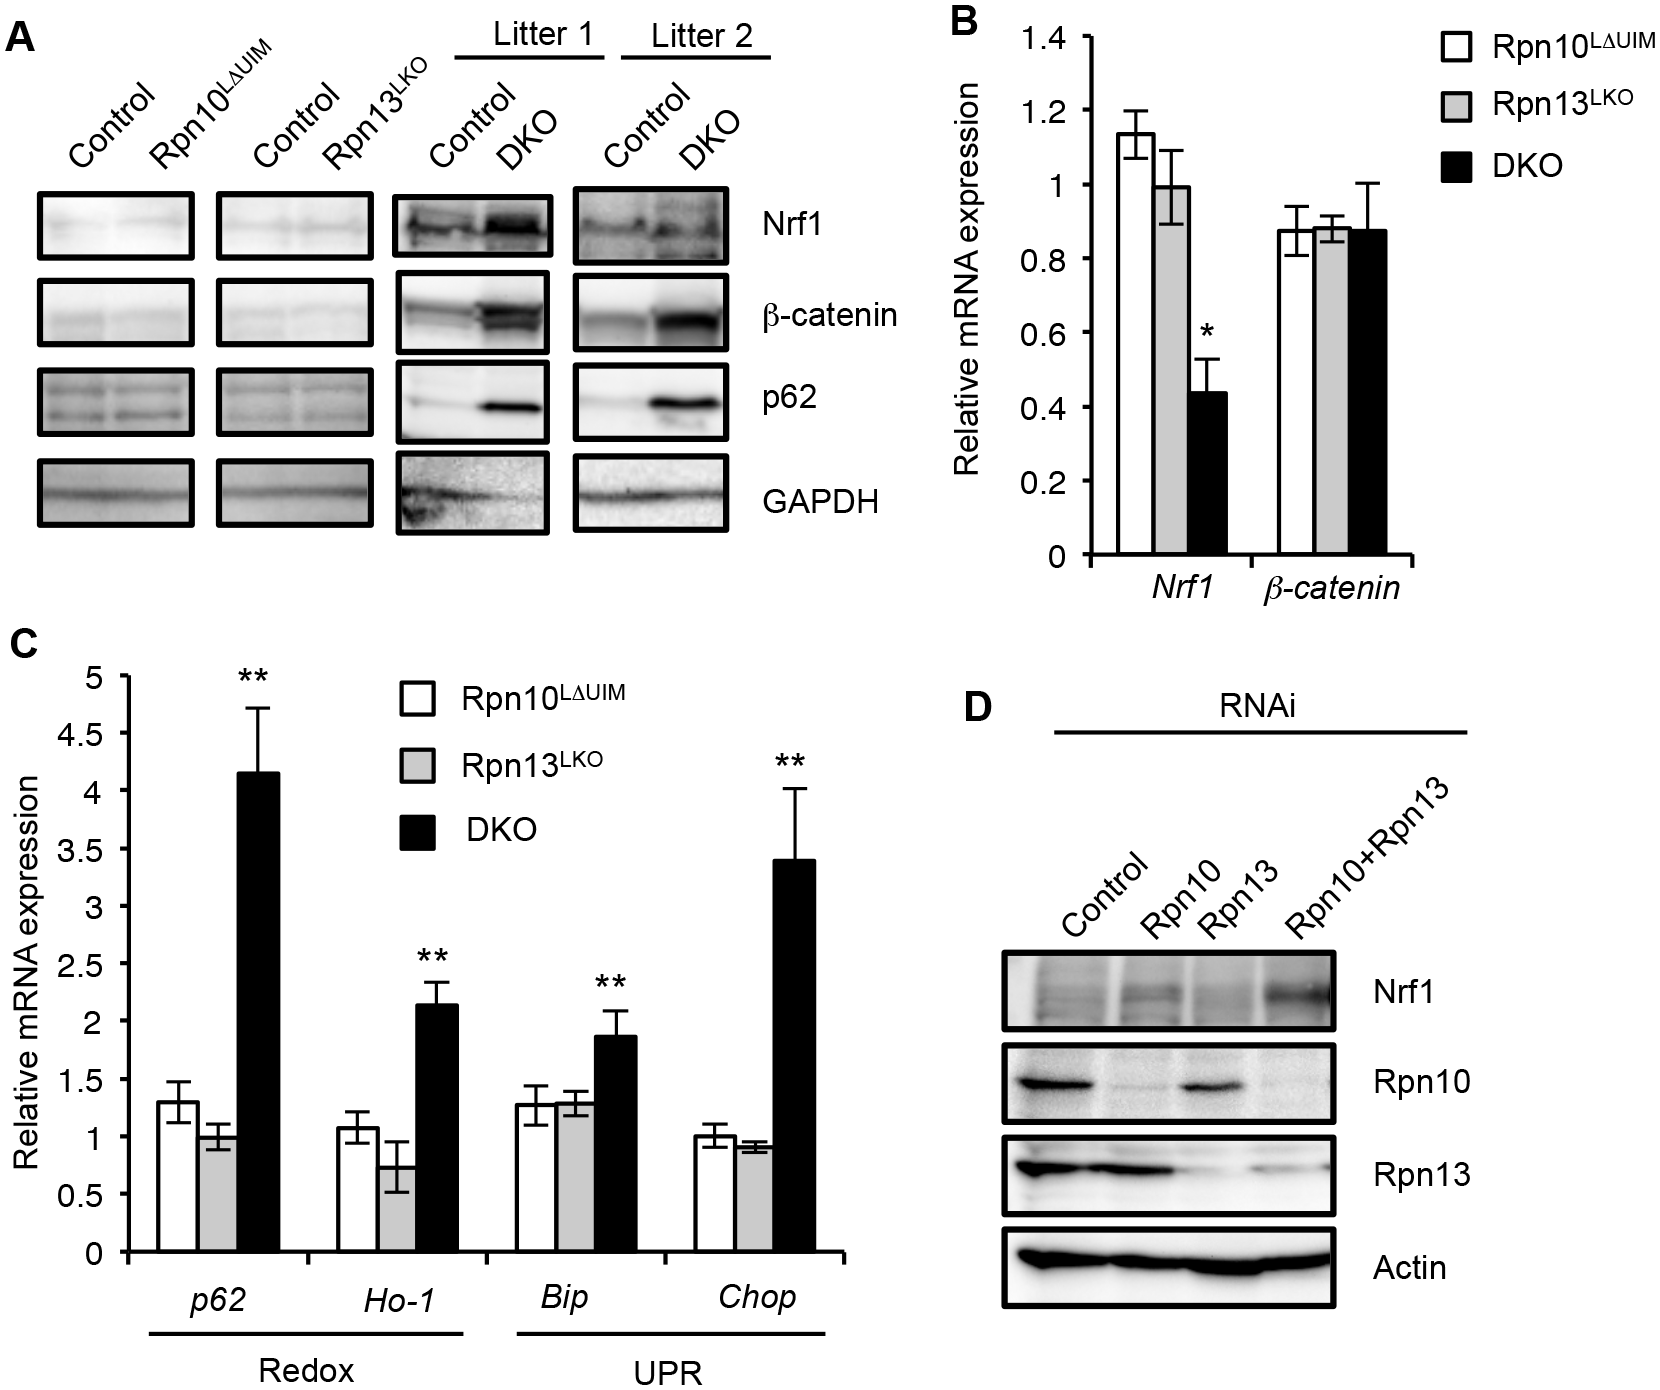 Synthetic effect of Rpn10-UIM and Rpn13 deletion on degradation of ubiquitinated proteins and cellular stress.